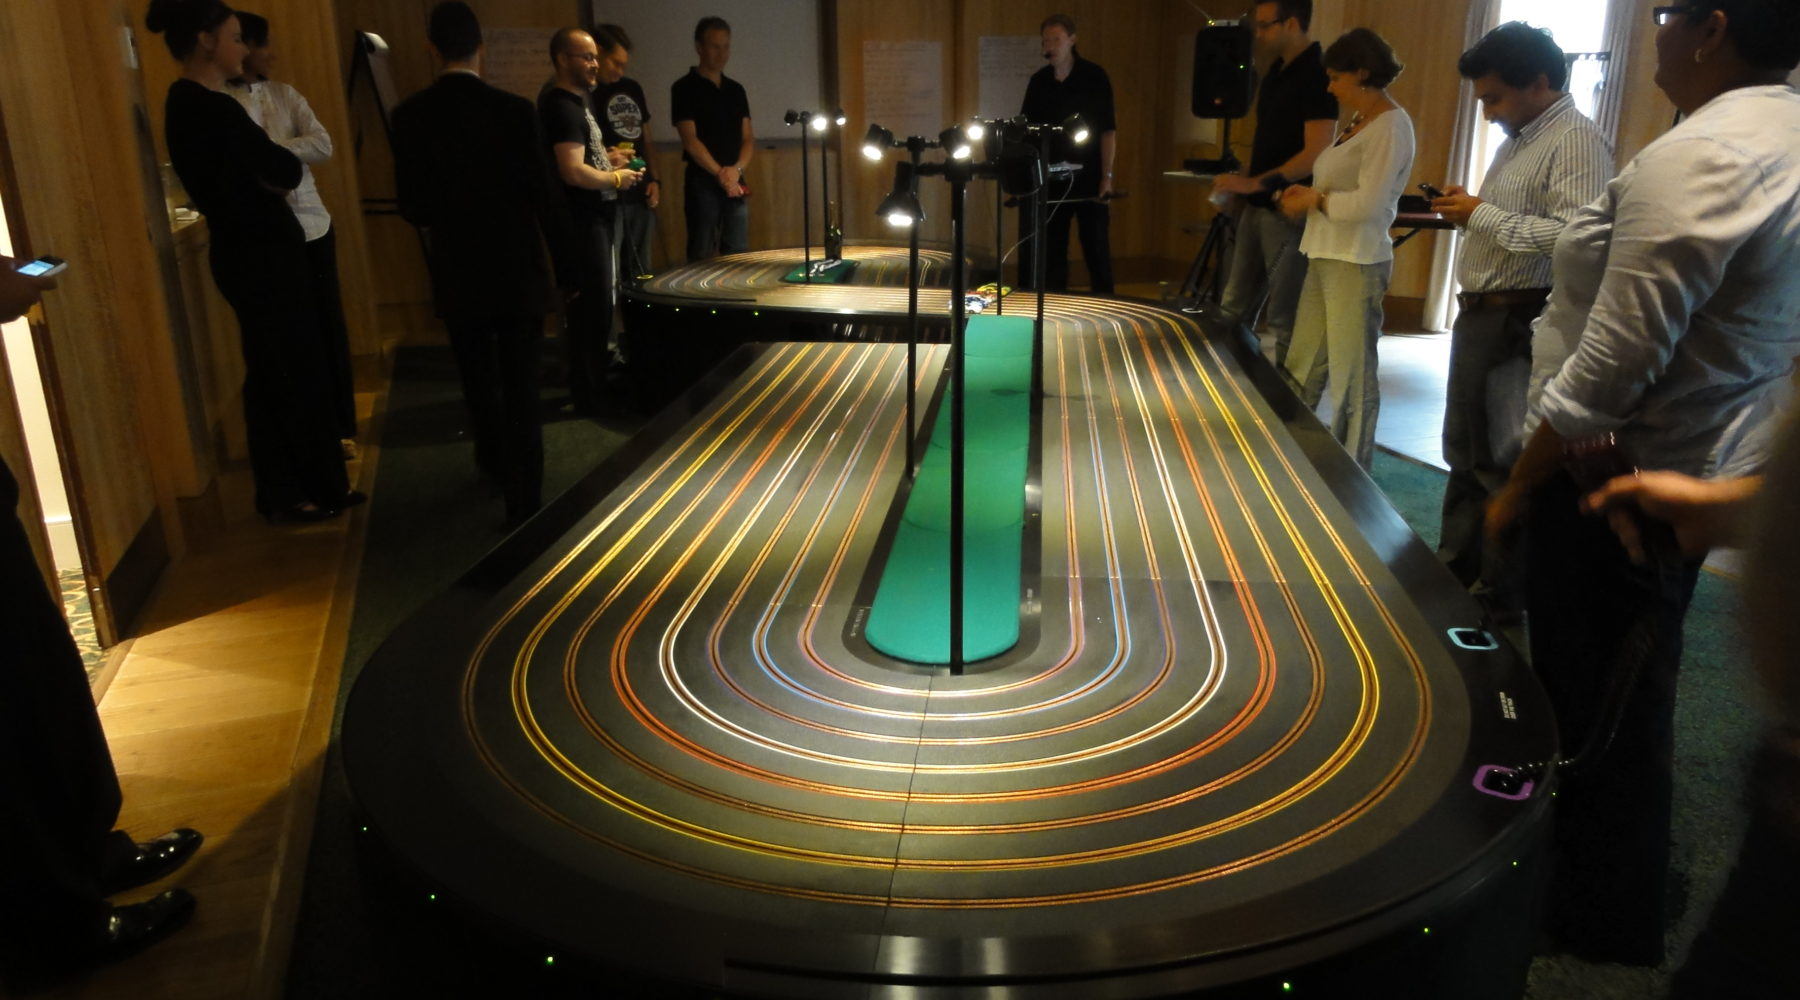 miniracing.com Giant Scalextric 8 lane track for hire set up at an exhibition event